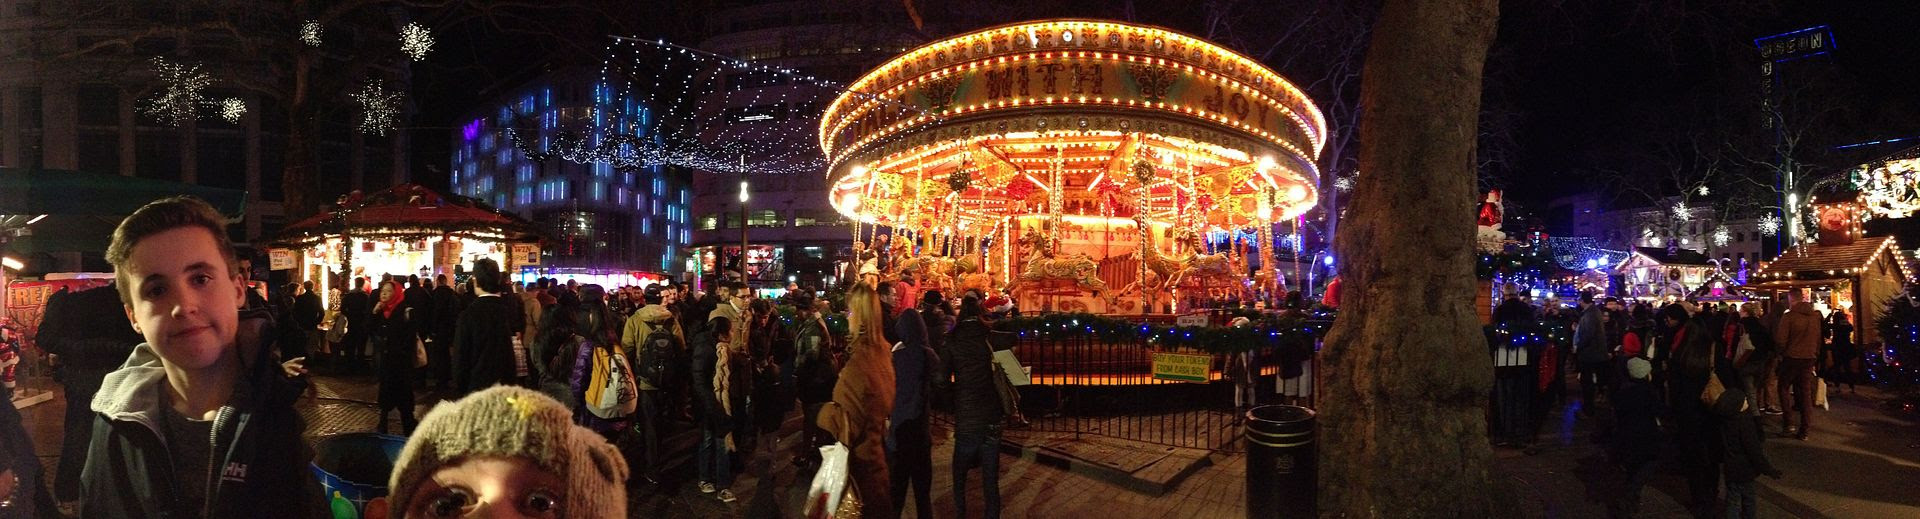 photo leicestersquare_zps654476a7.jpg